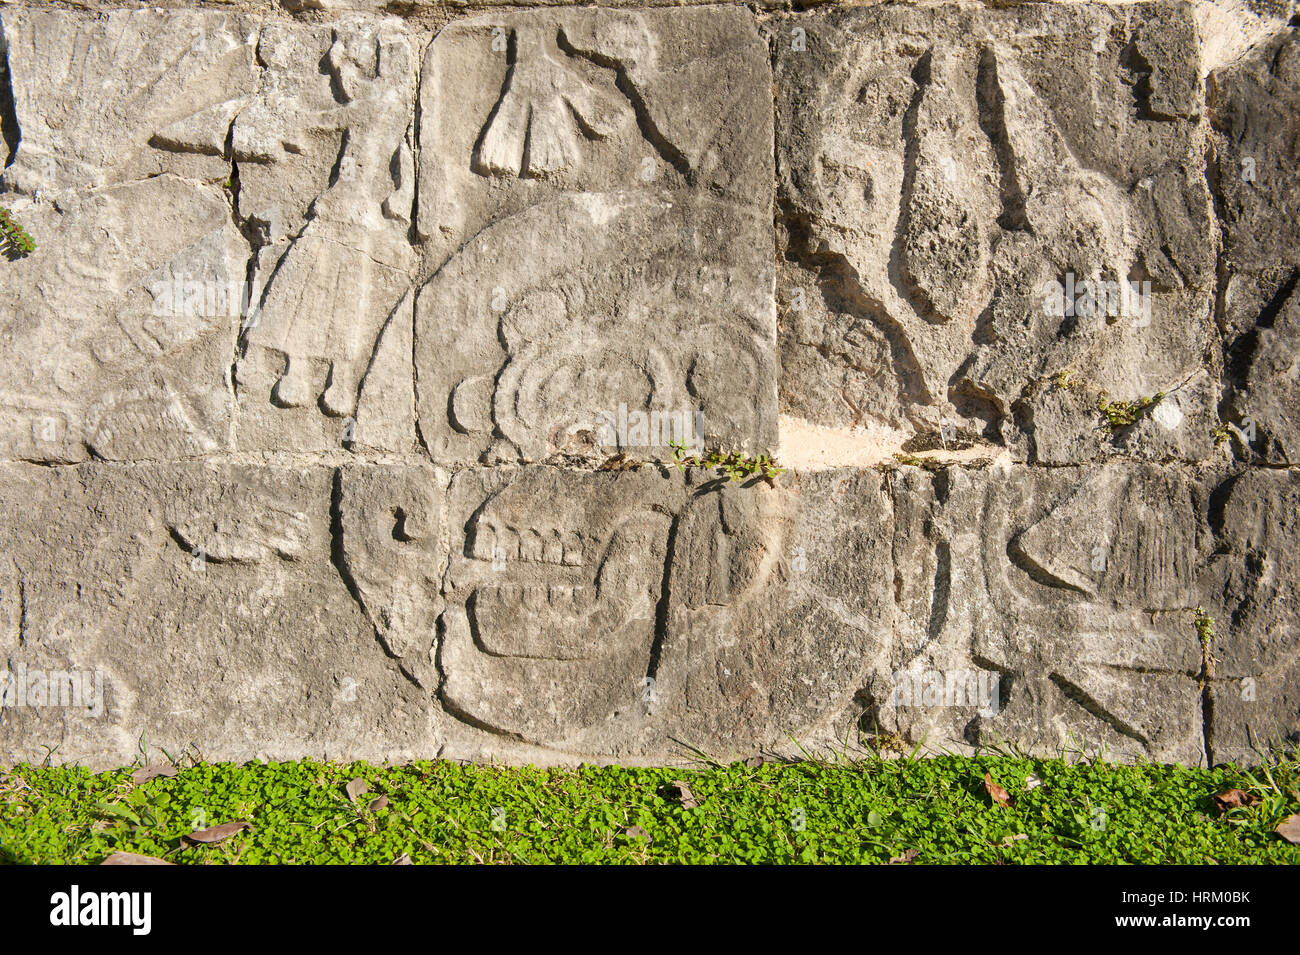 Bas relief with skull carved on stone at Chichen Itza Yucatan Mexico - Stock Image